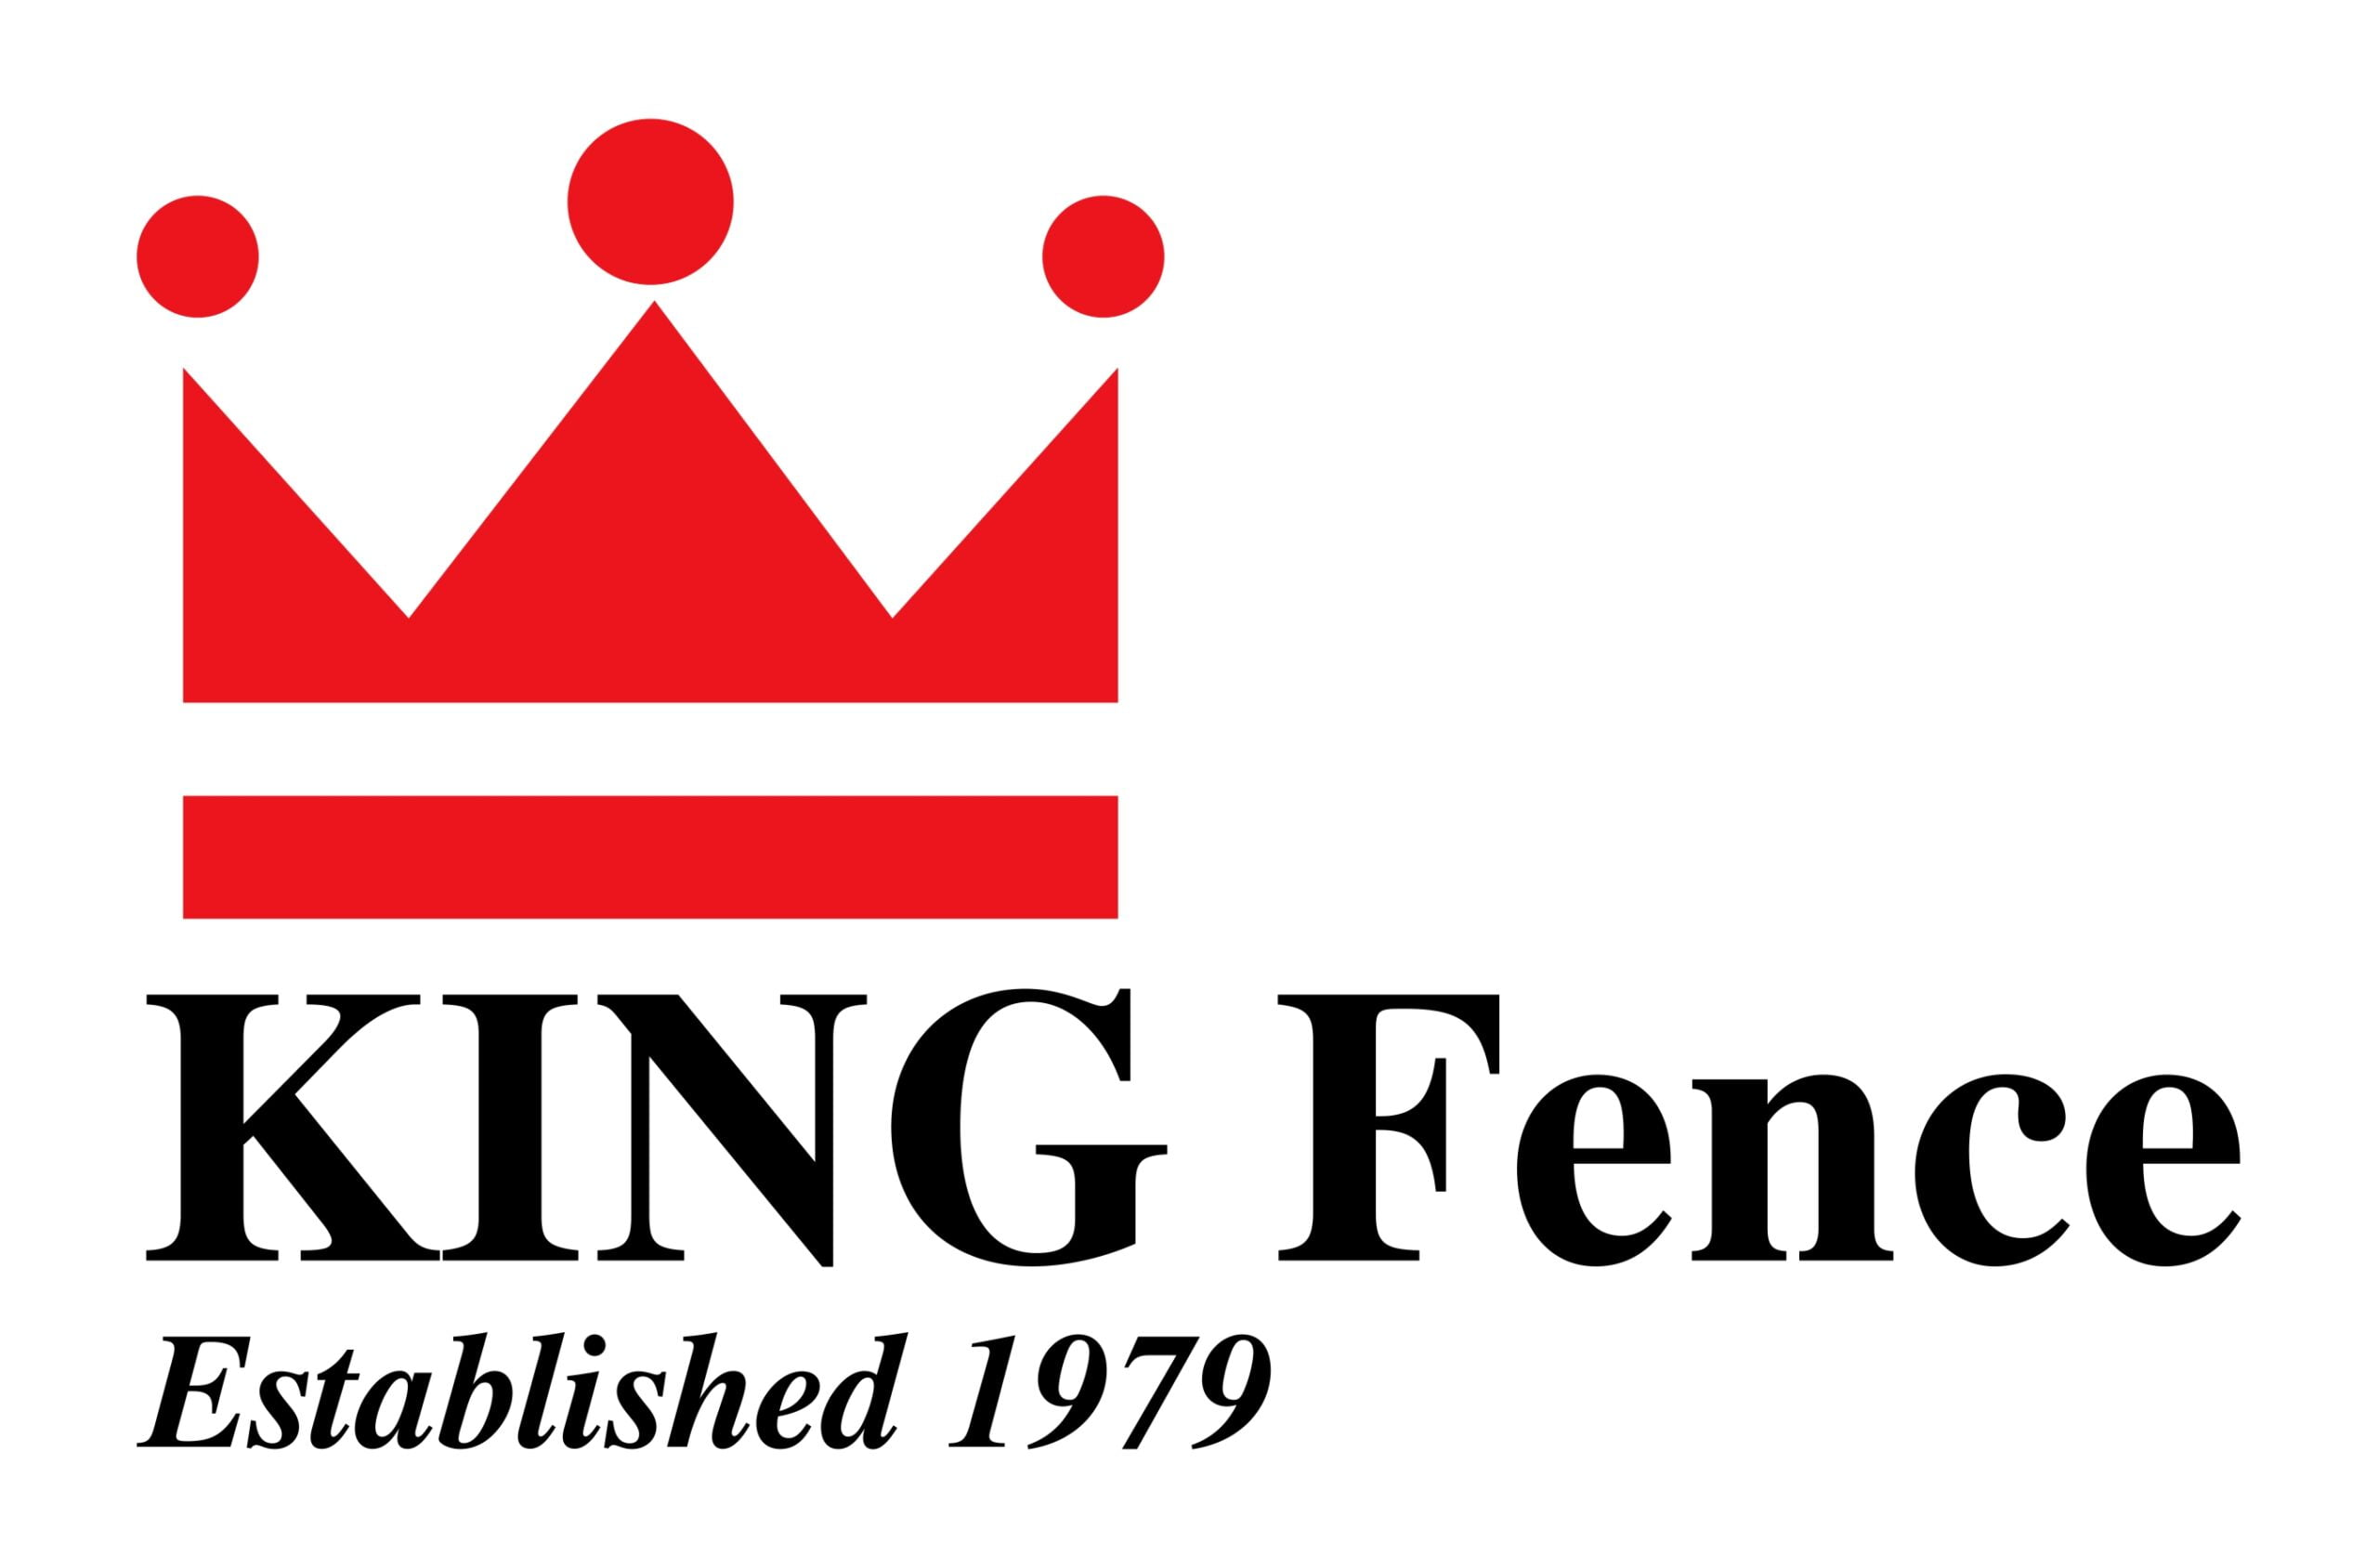 King Fence